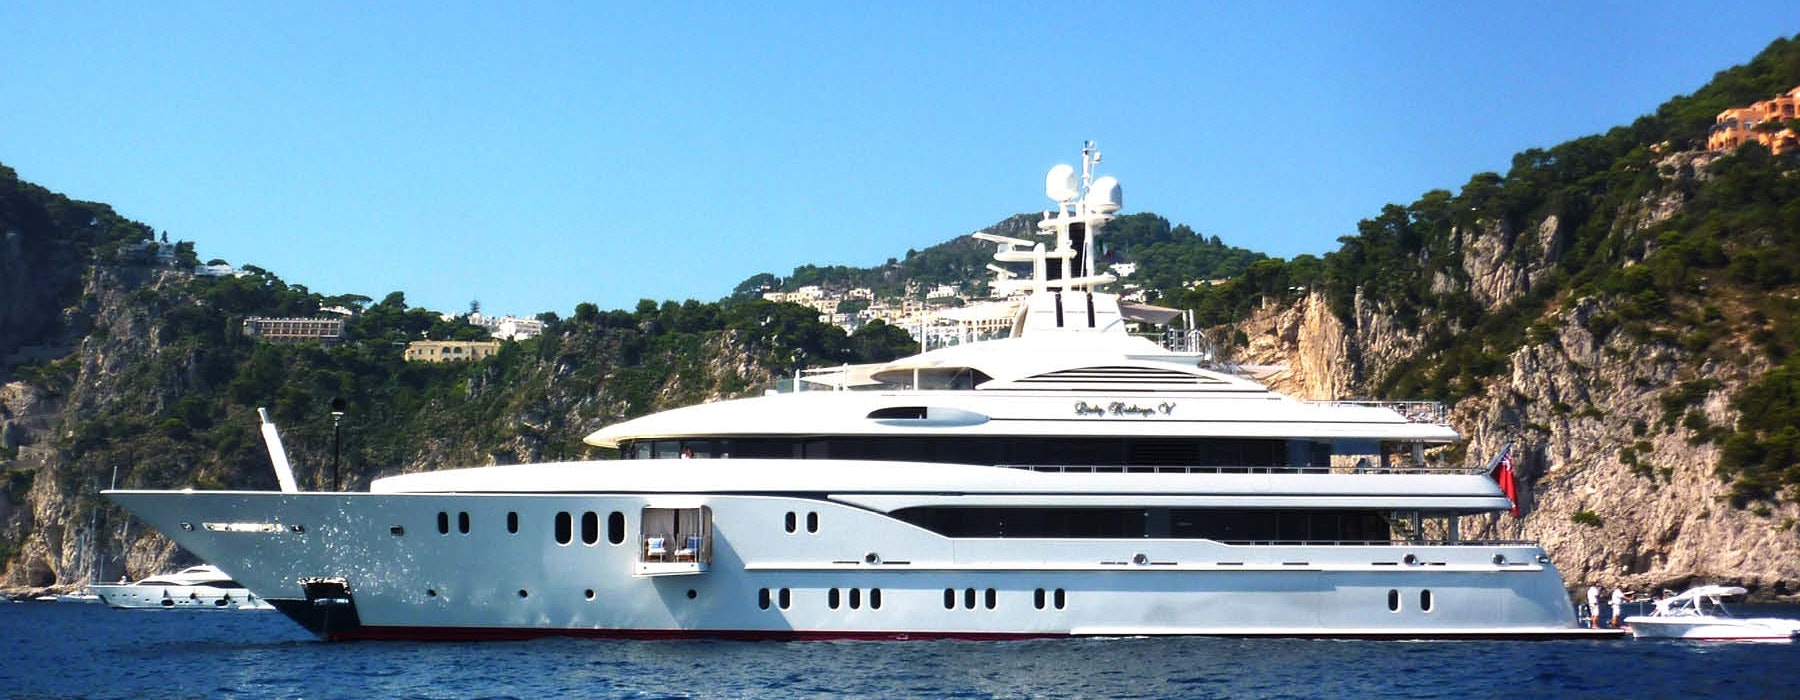 Lady Kathryn V luxury yacht